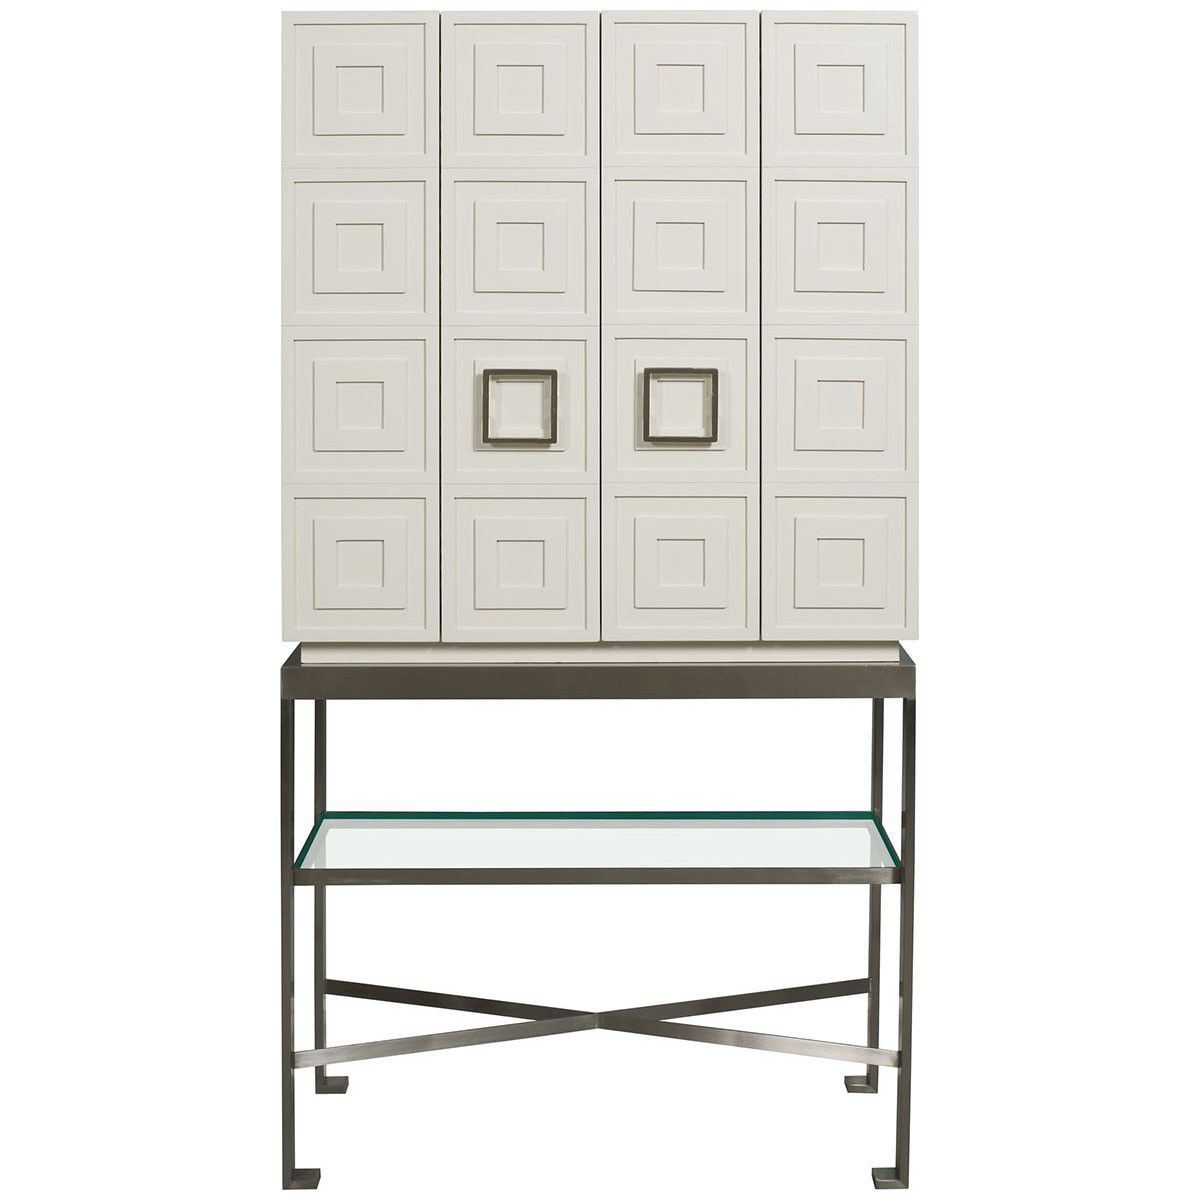 Vanguard furniture knickerboker bar cabinet in white lacquer 展示